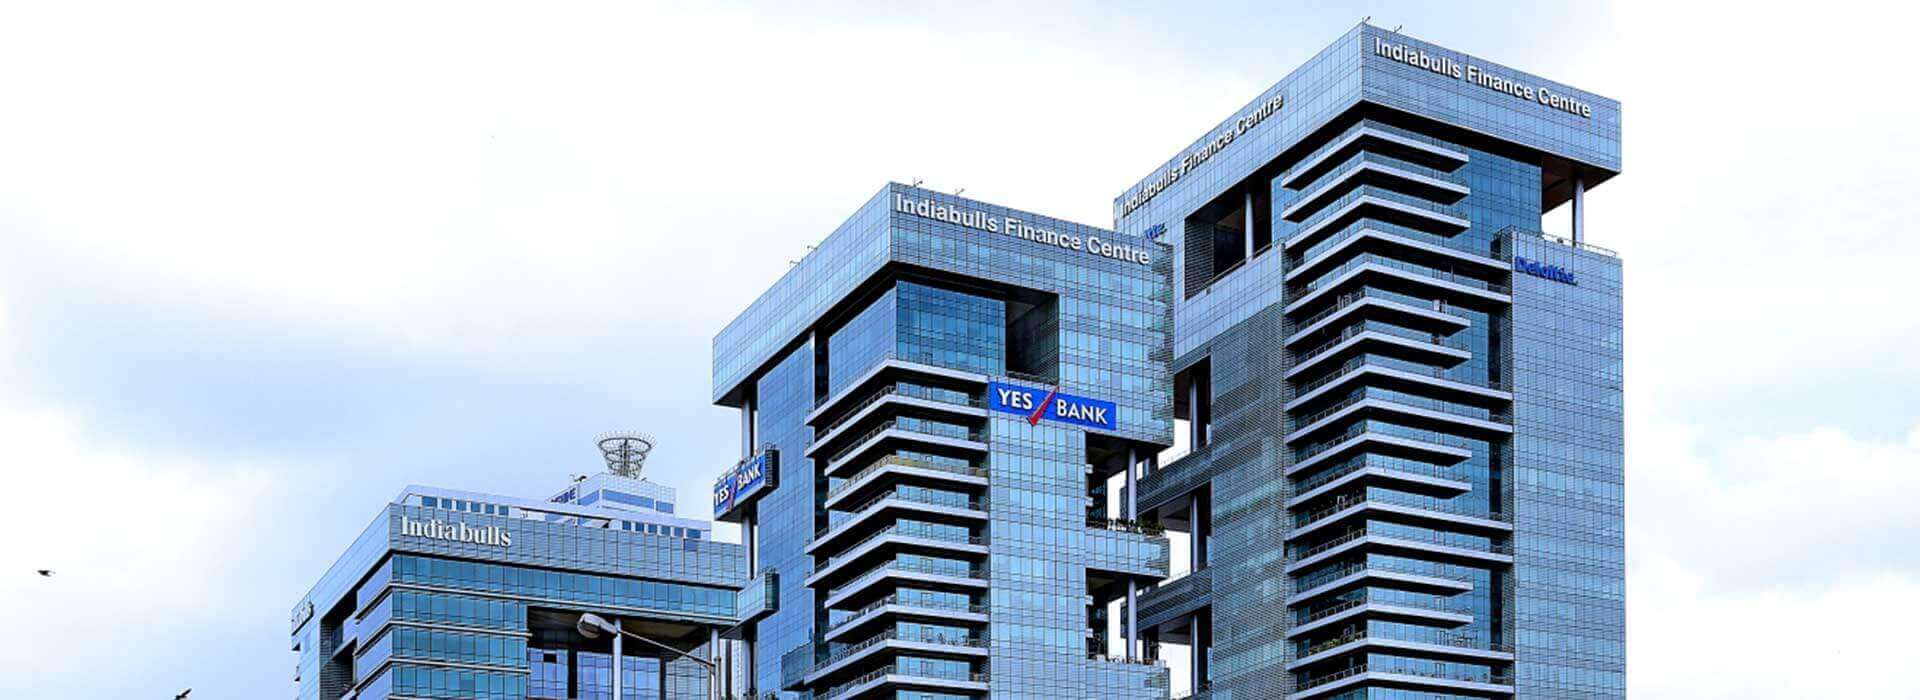 Commercial Property - Indiabulls Finance Centre